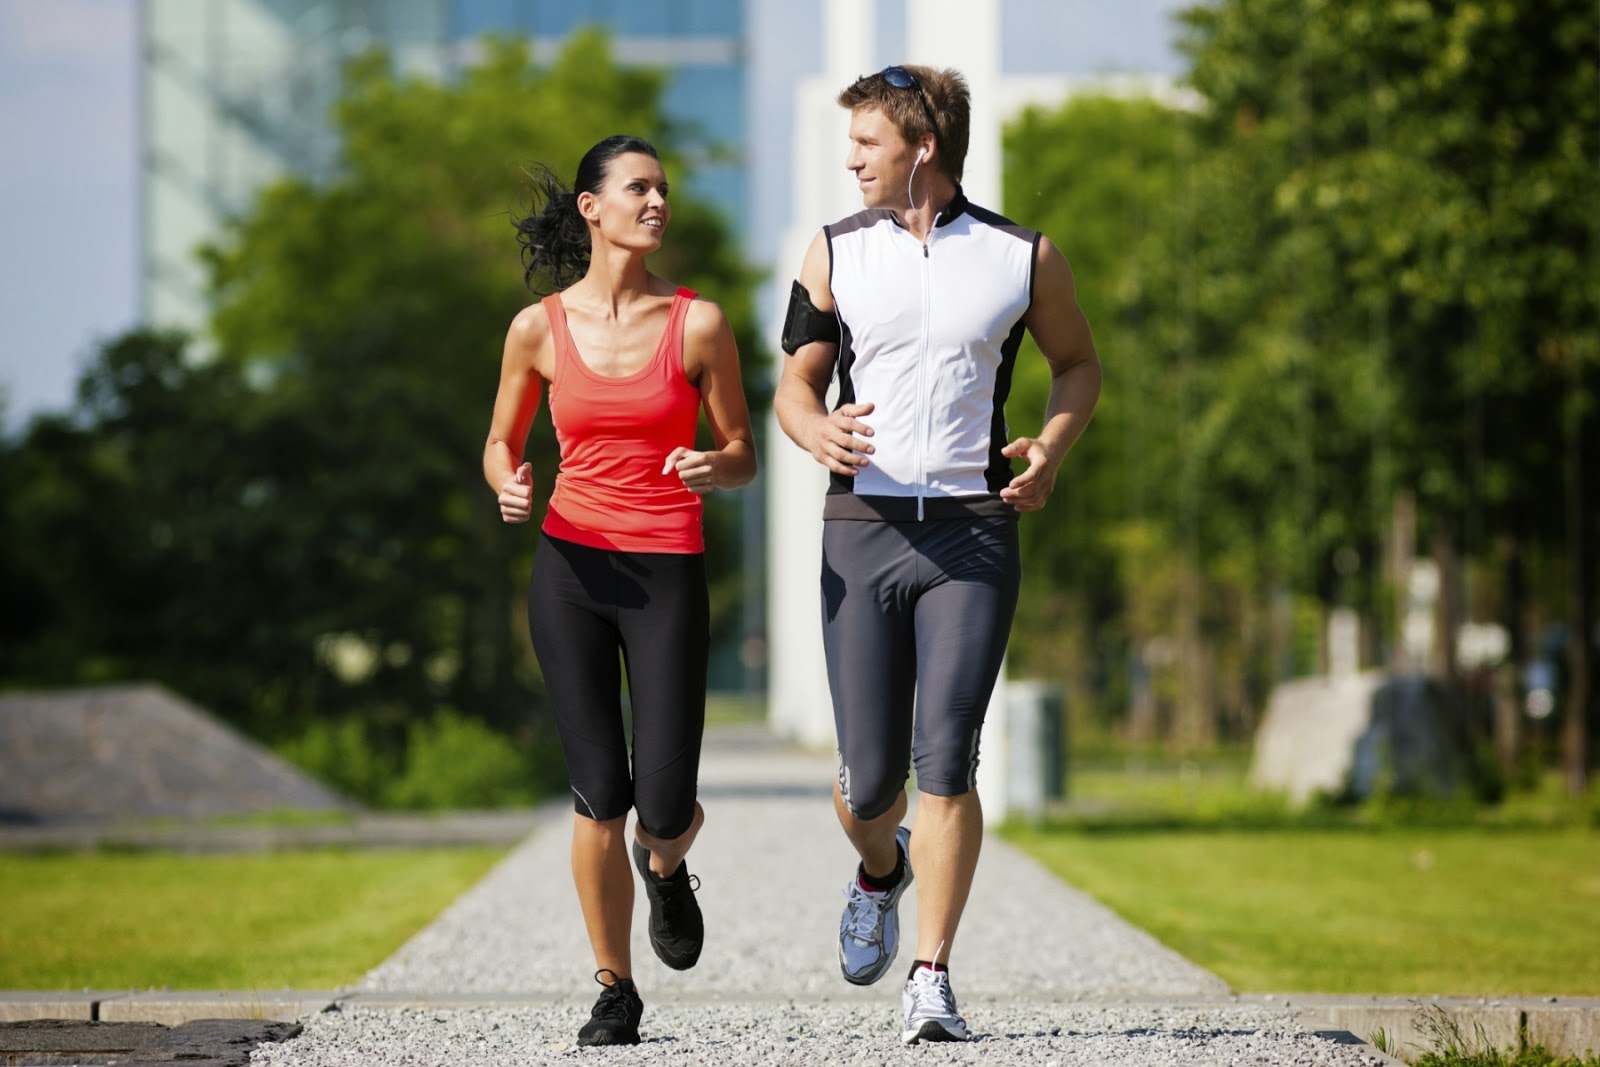 weight loss doing exercise, running, doing exercise,